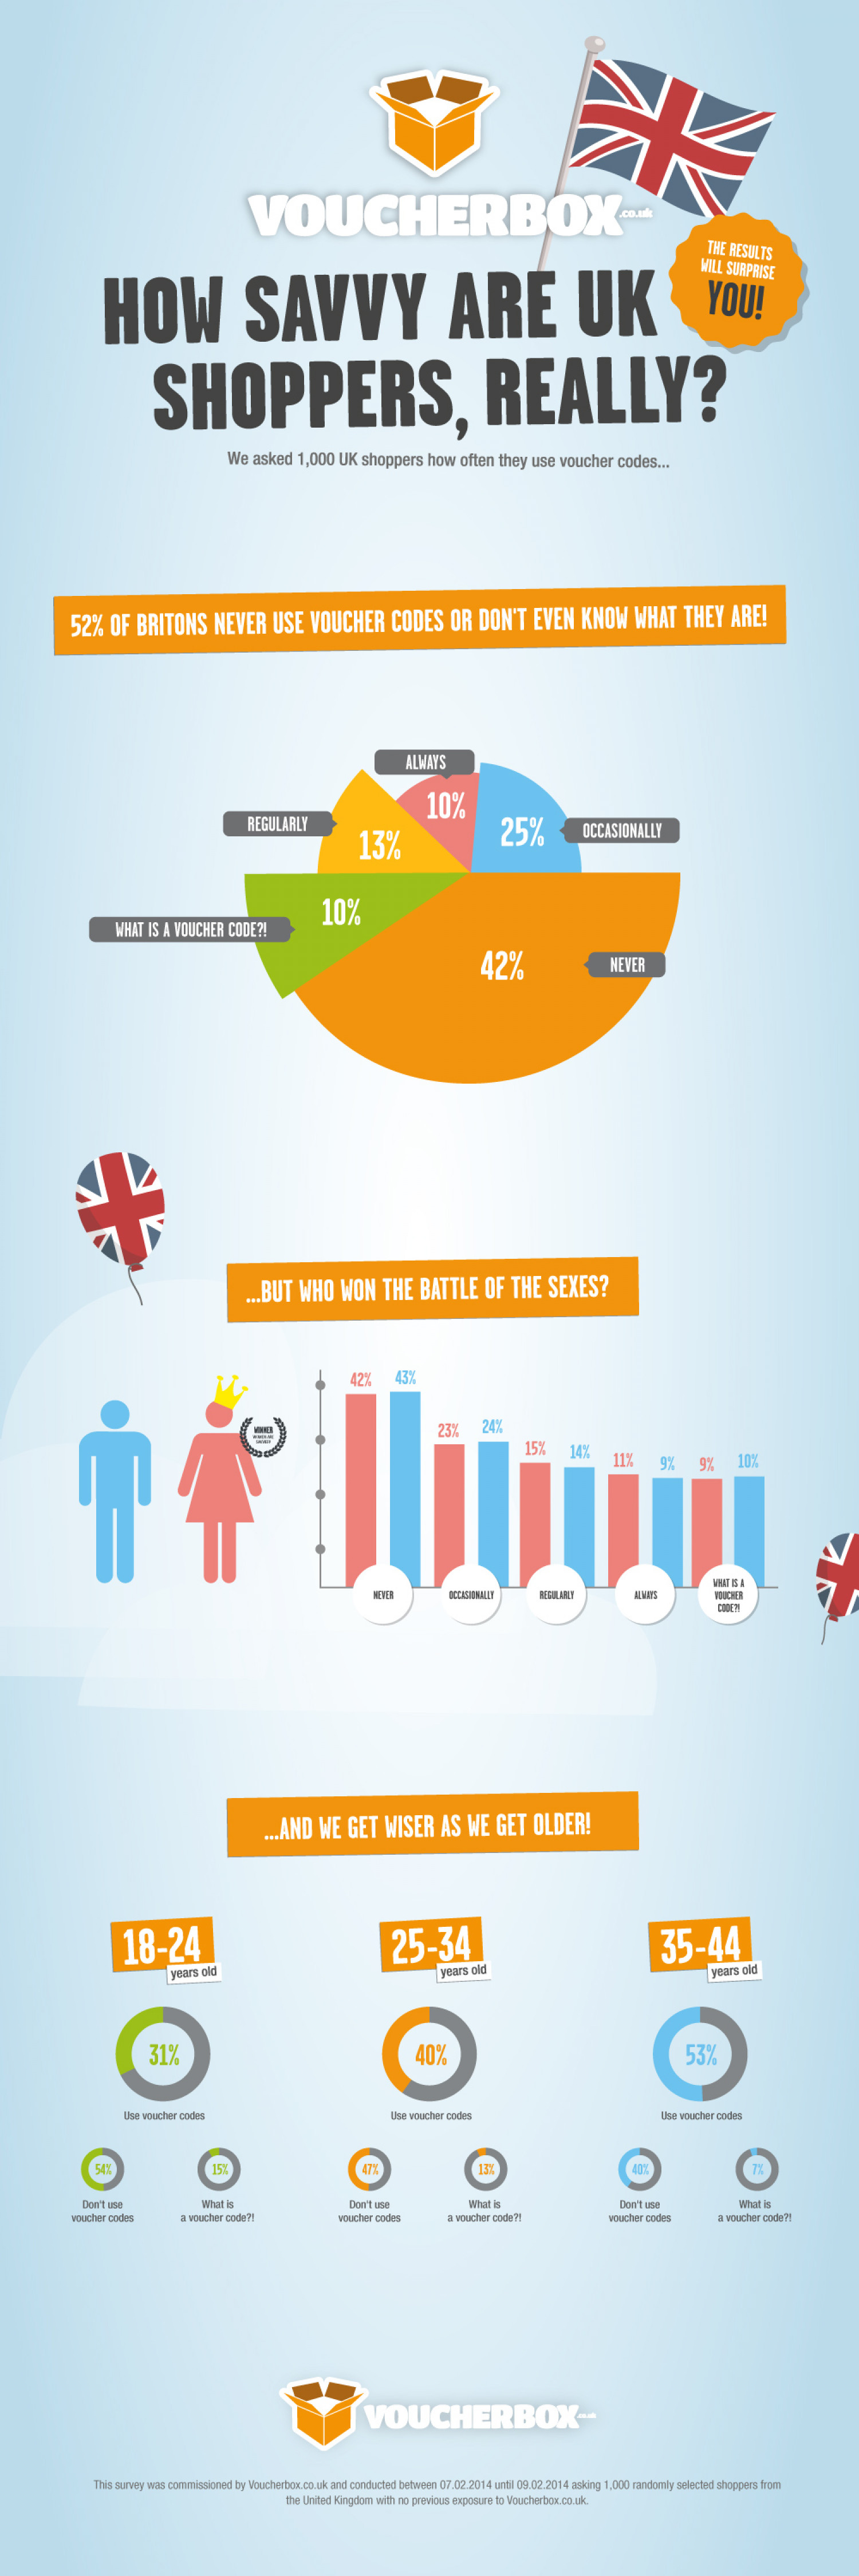 How Savvy are UK Shoppers, Really? Infographic